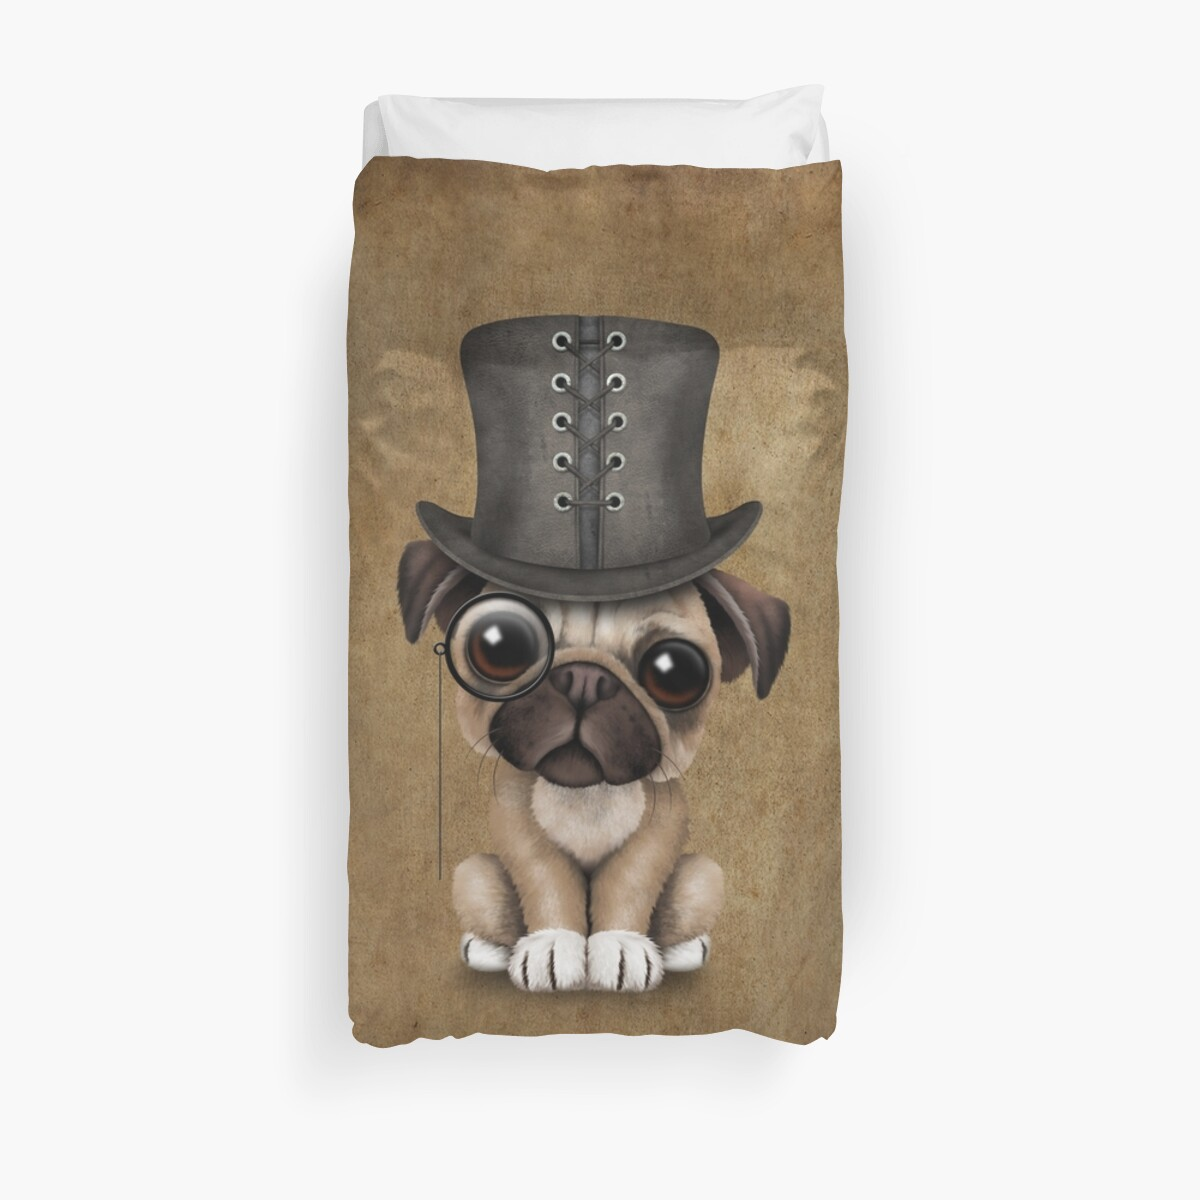 98a84c8cac4 Cute Pug Puppy Dog with Monocle and Top Hat